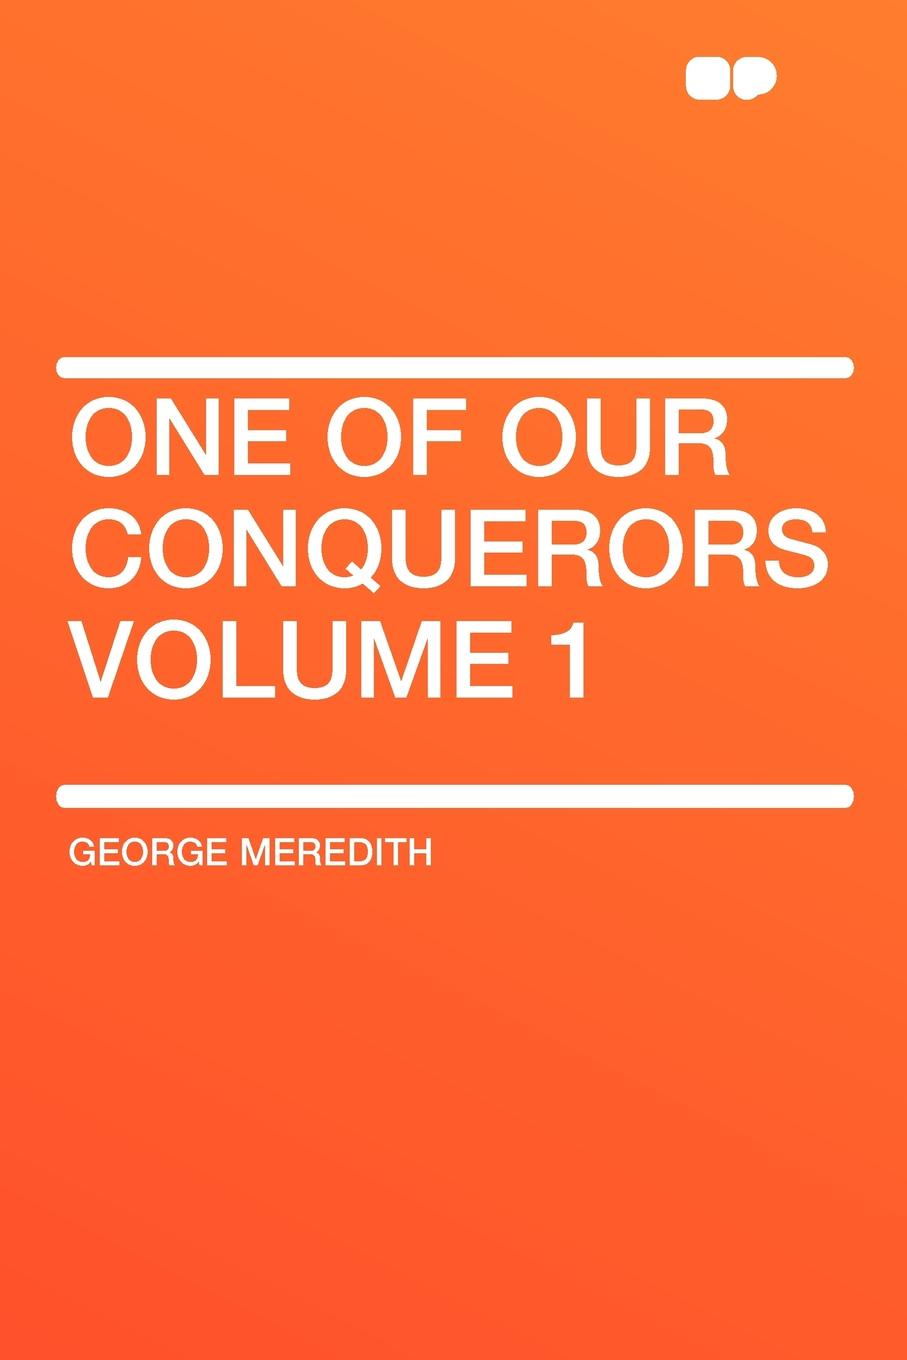 George Meredith One of Our Conquerors Volume 1